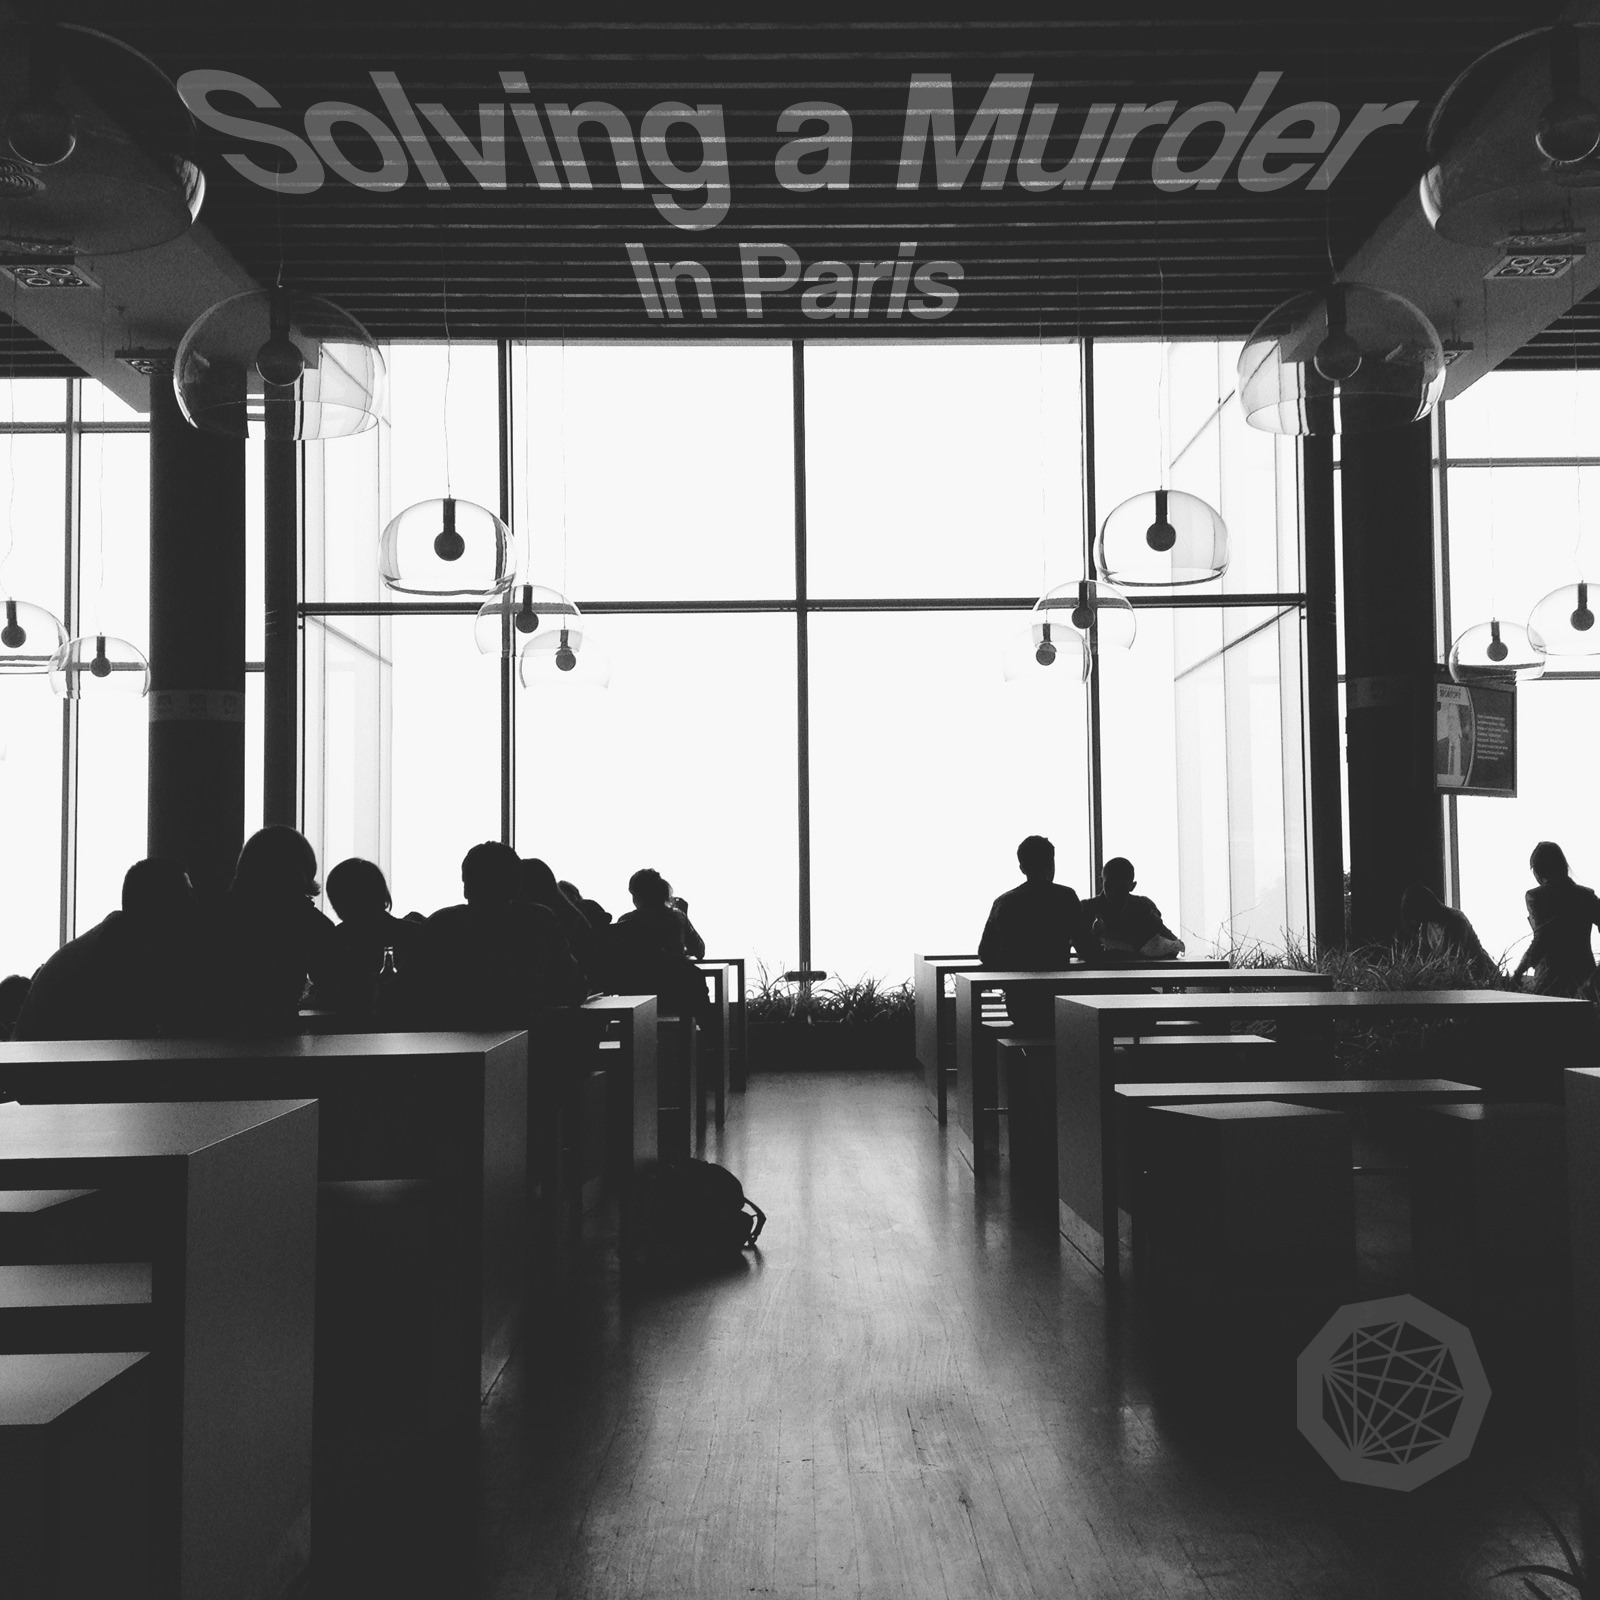 Solving A Murder In Paris by Mindless Machines Audio Lab